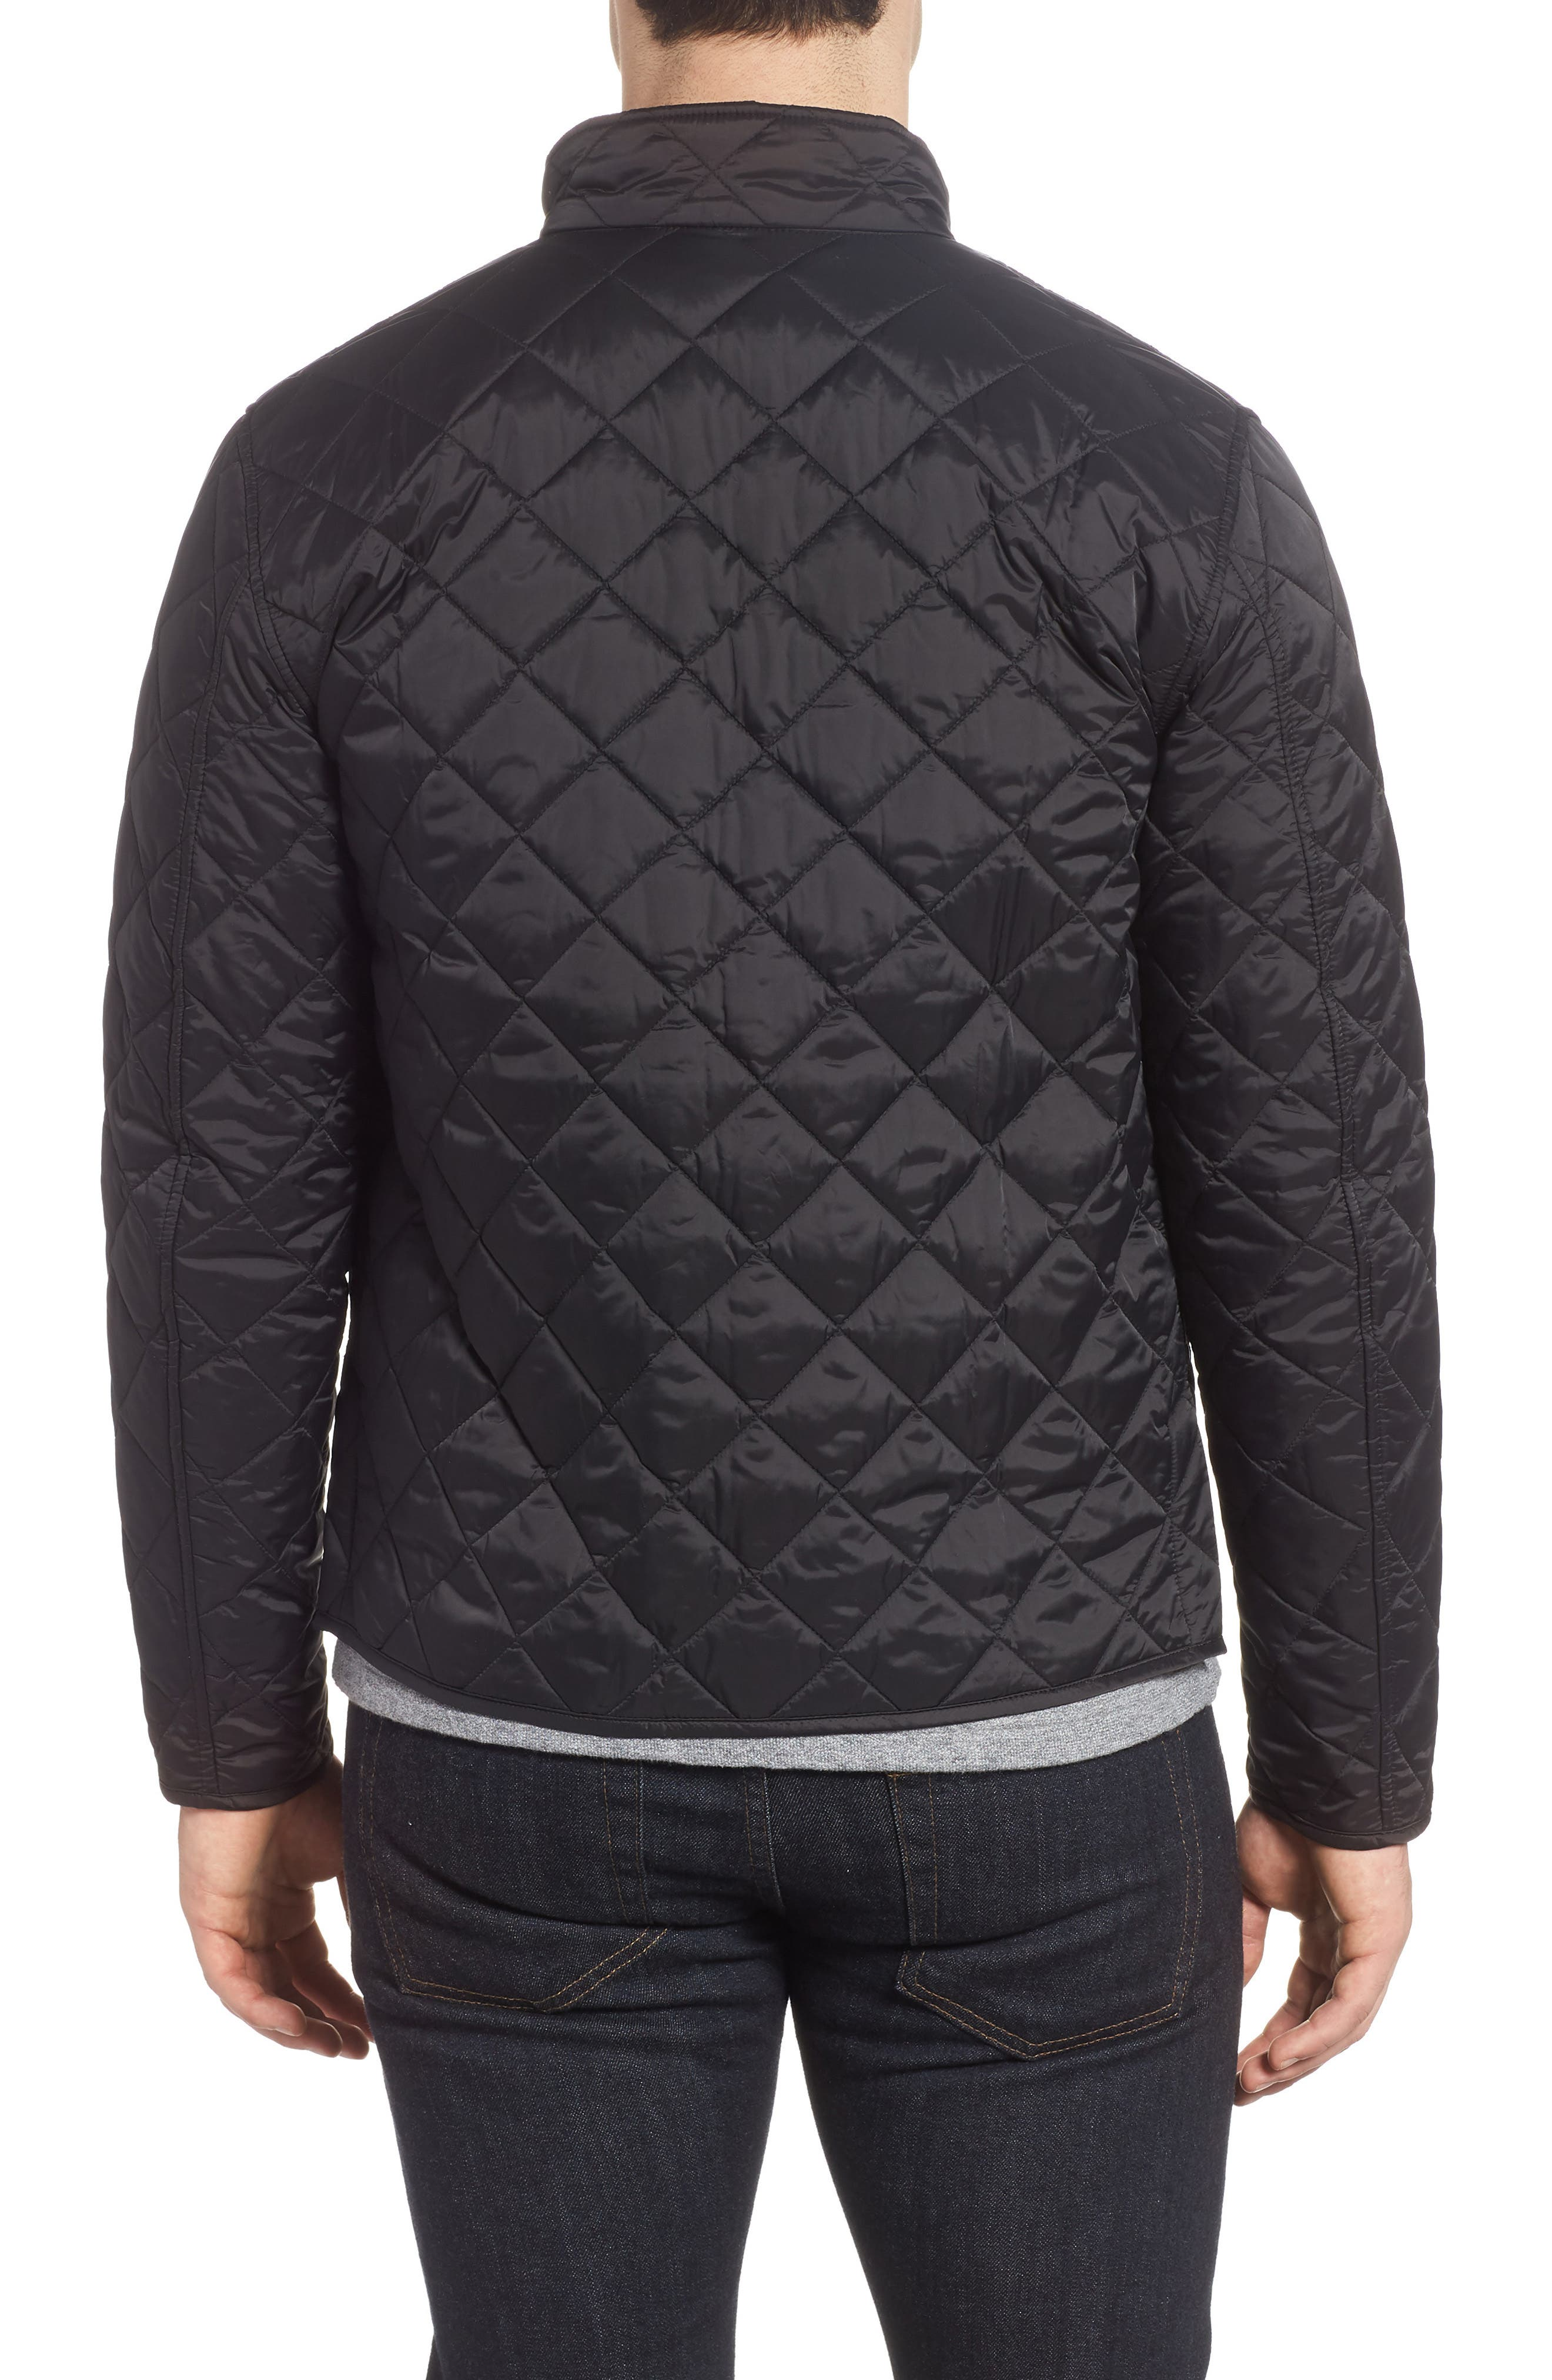 BARBOUR,                             Gear Quilted Jacket,                             Alternate thumbnail 2, color,                             BLACK